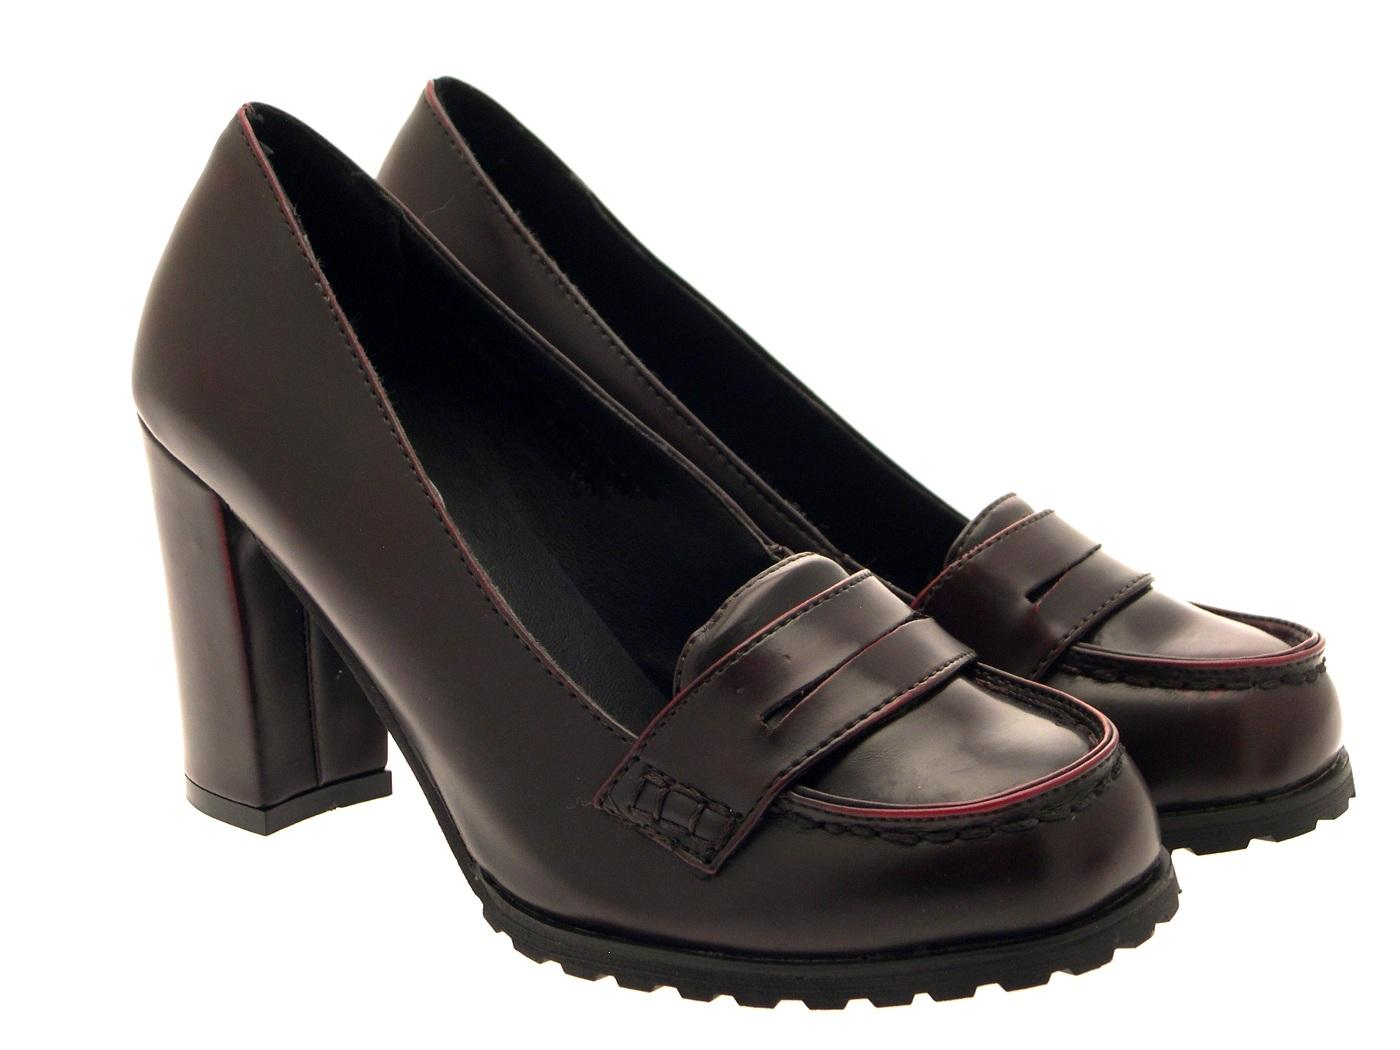 Free shipping on women's loafer flats, slip-on flats, and flat moccasins for women at lindsayclewisirah.gq Shop from top brands like Tory Burch, TOMS, Sam Edelman and more. Totally free shipping & returns.